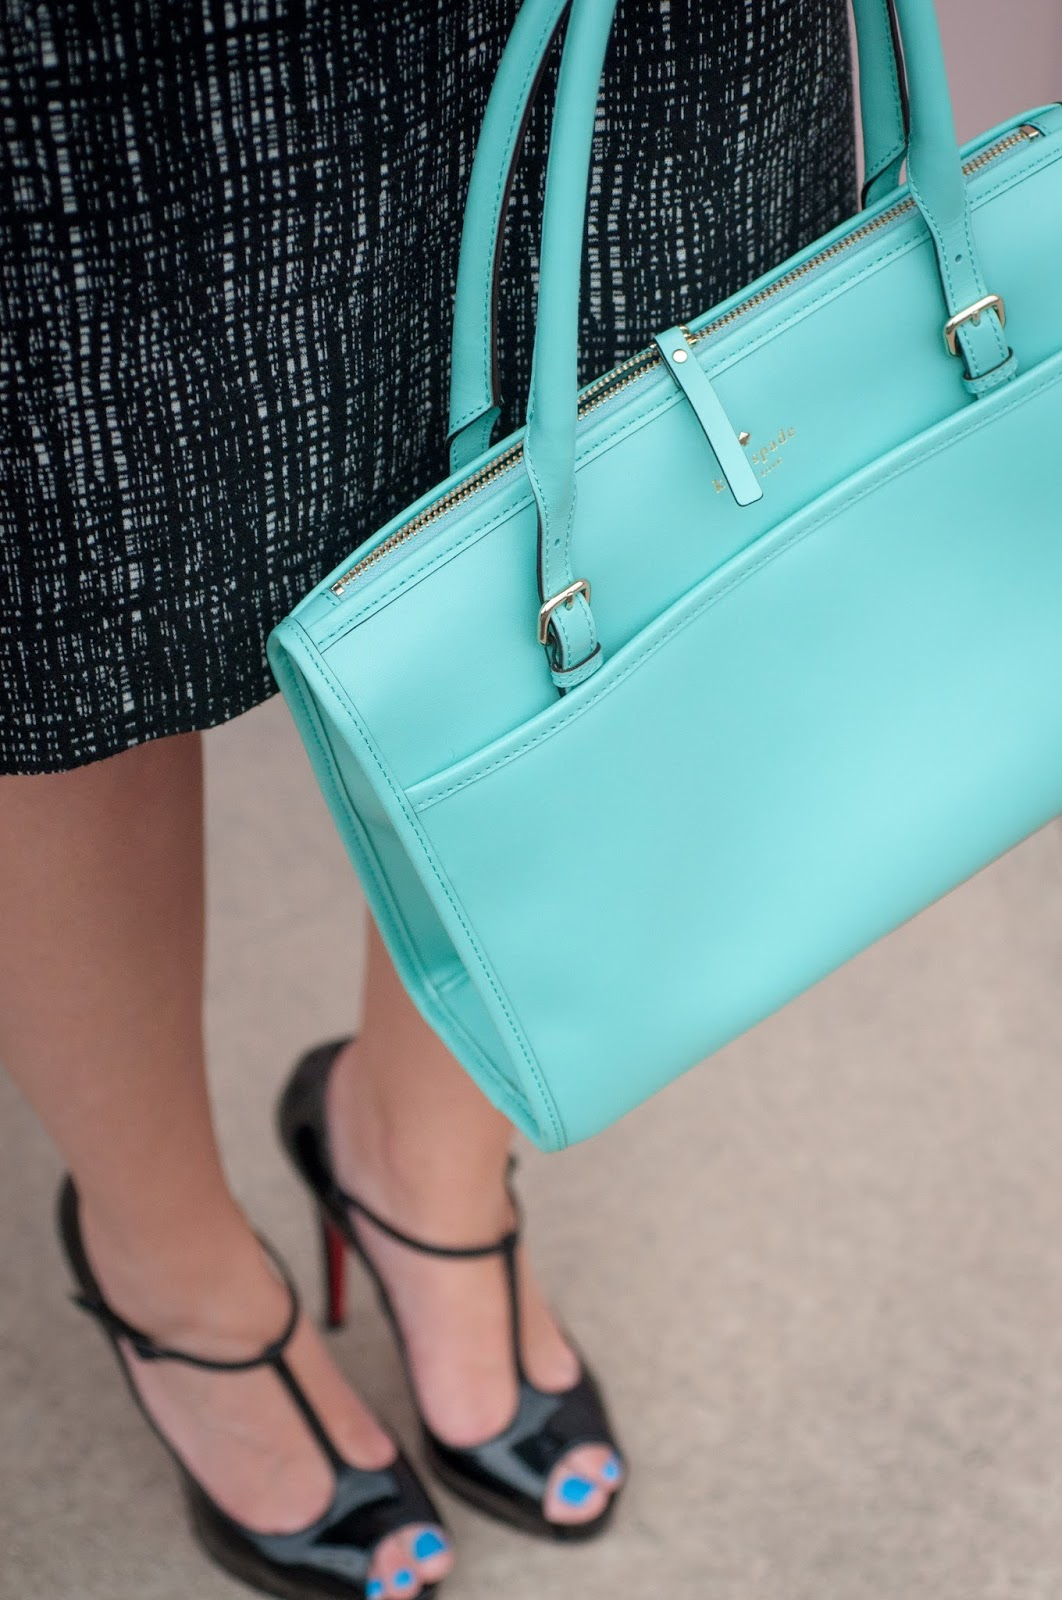 blue toe nails, ootd, kate spade, kate spade new york handbag, christian louboutin, red soles